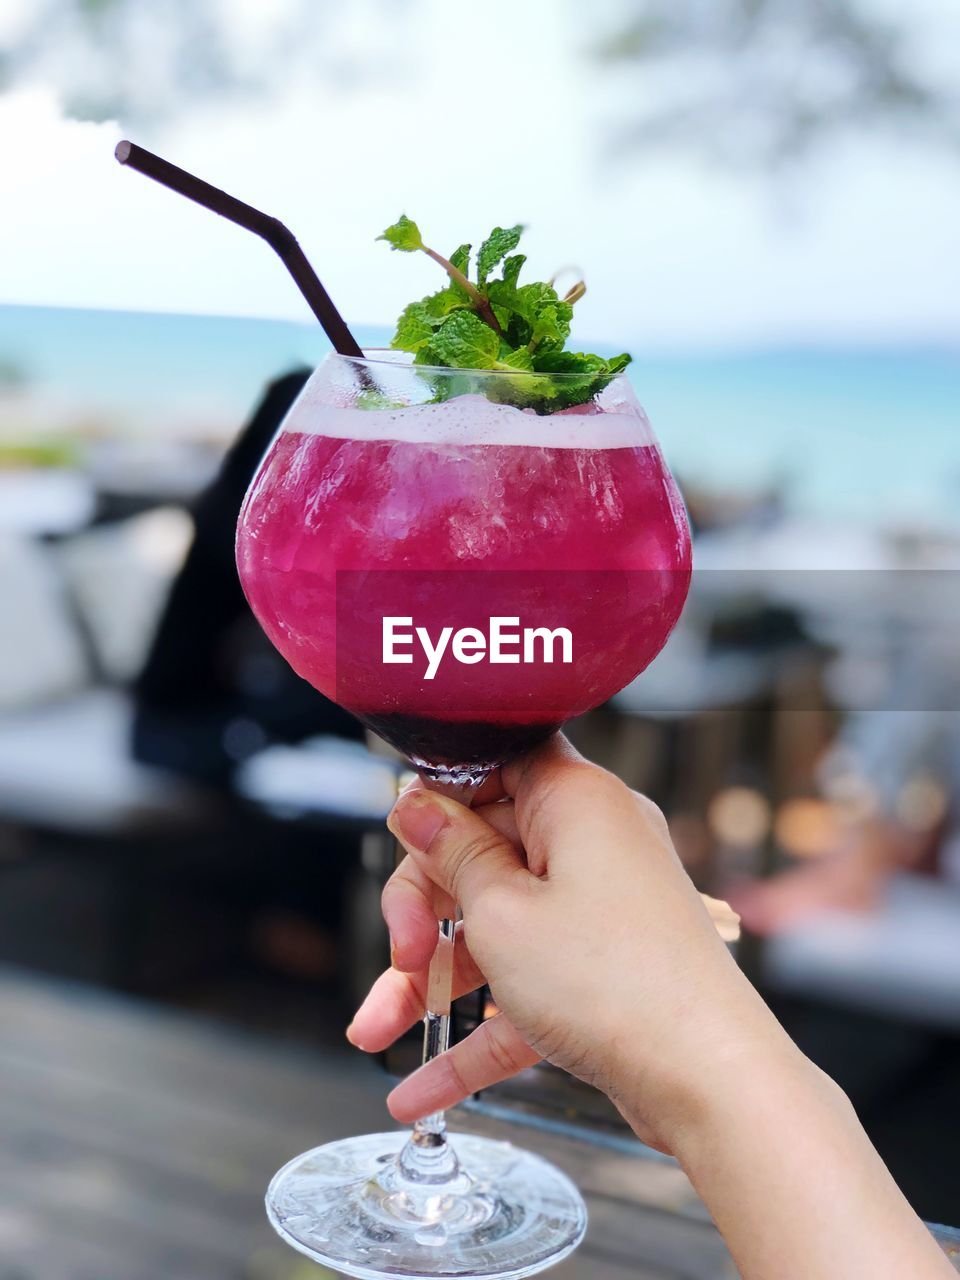 food and drink, food, holding, hand, one person, human hand, freshness, focus on foreground, human body part, real people, fruit, healthy eating, unrecognizable person, indulgence, lifestyles, day, close-up, red, berry fruit, temptation, glass, mint leaf - culinary, herb